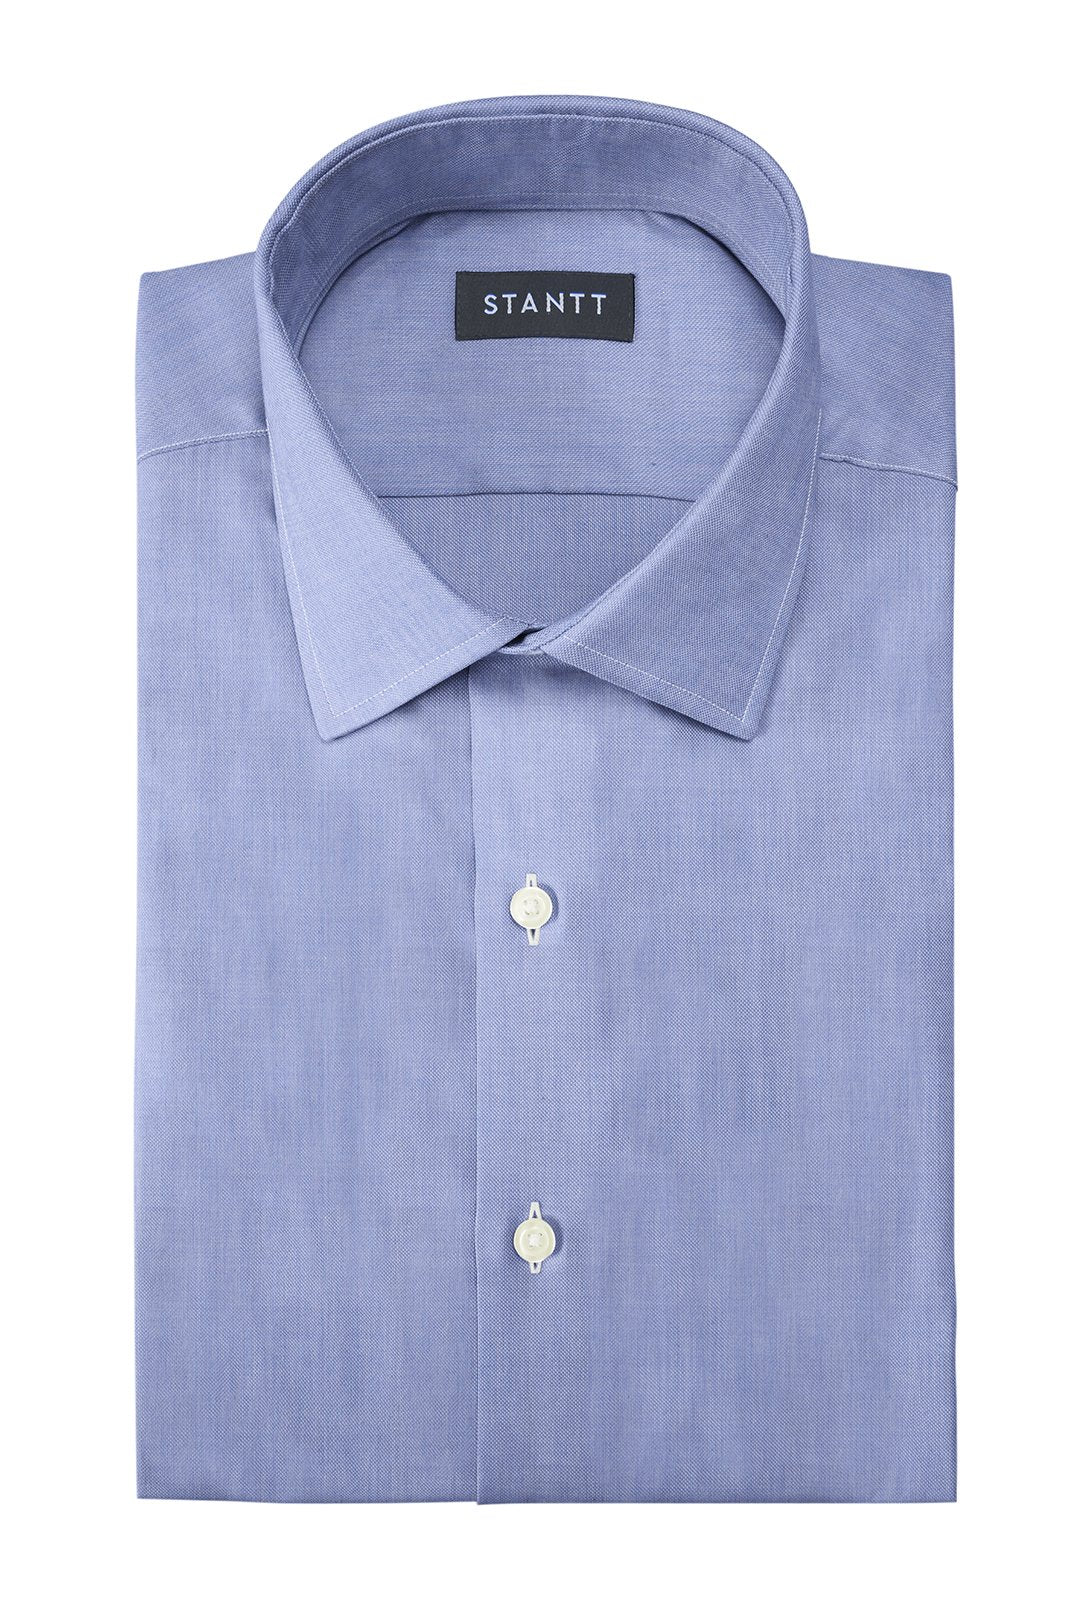 Soft Chambray: Modified-Spread Collar, Barrel Cuff